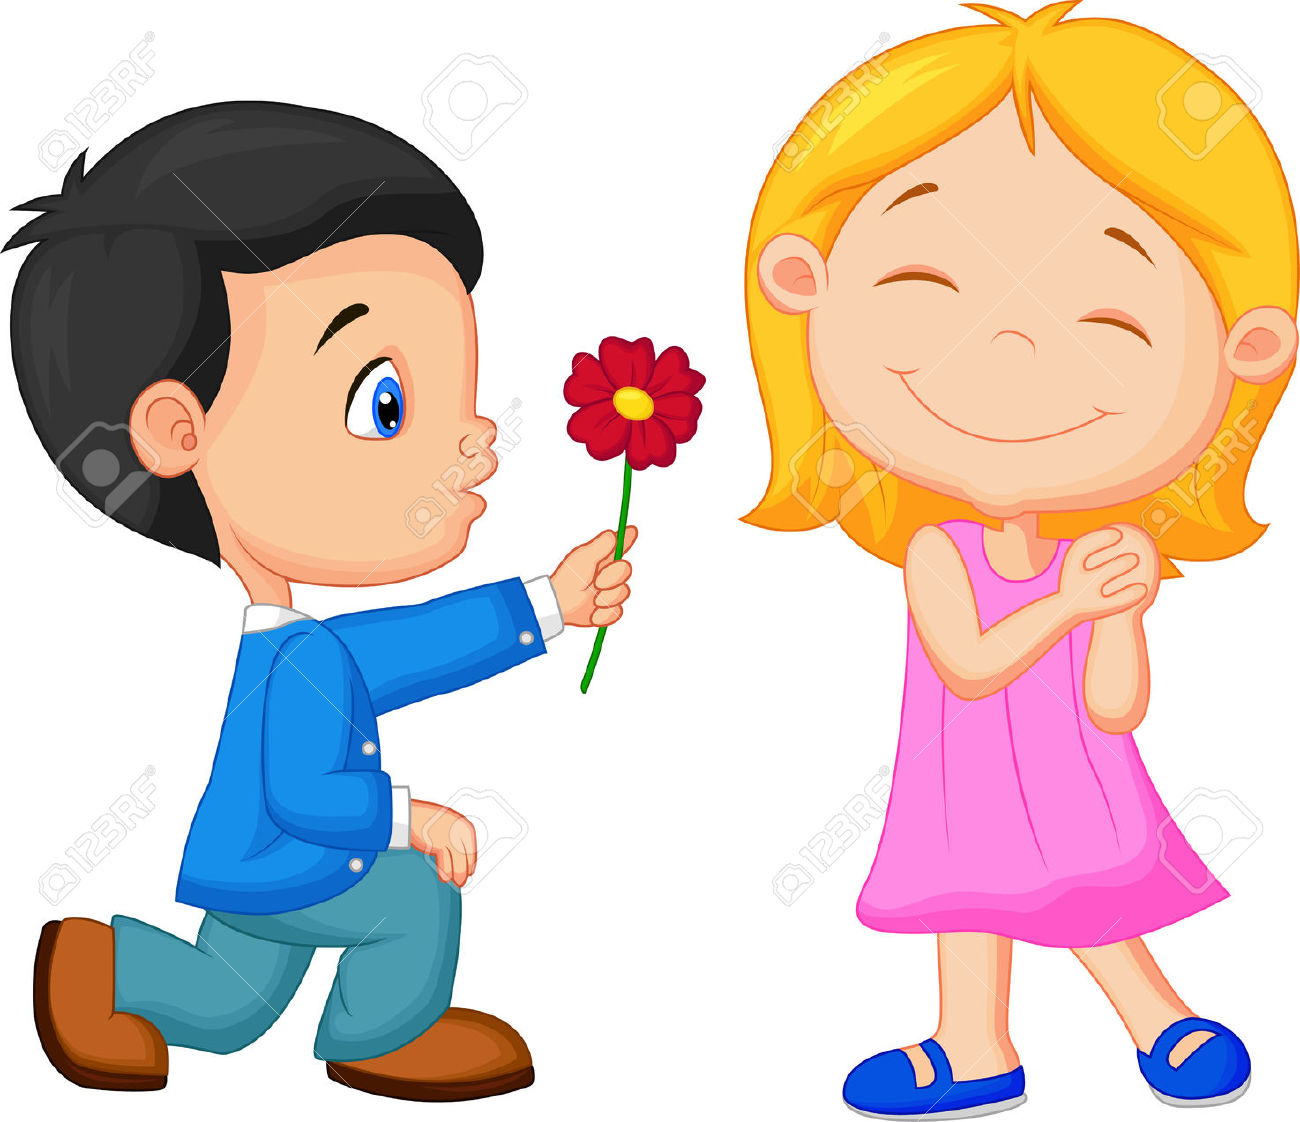 A boy giving a flower to a girl clipart image royalty free A boy giving a flower to a girl clipart - ClipartFest image royalty free